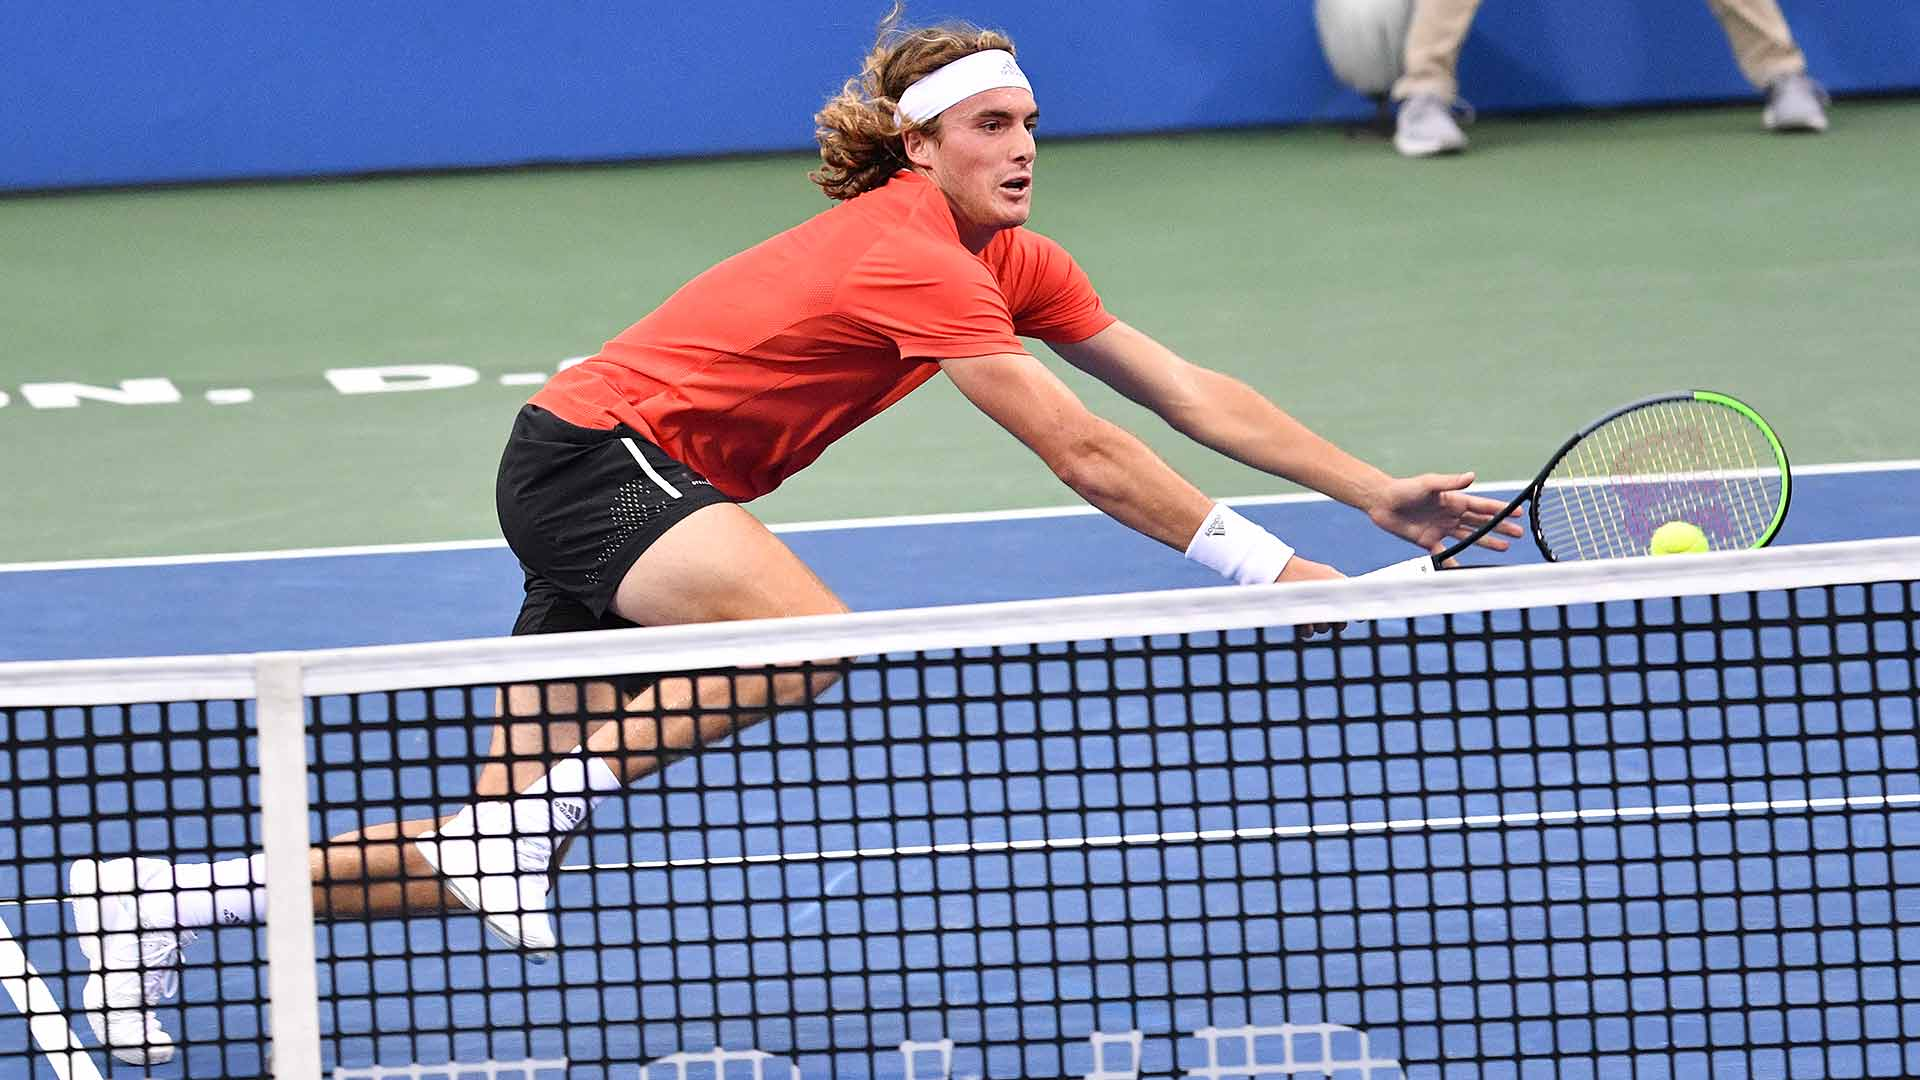 Stefanos Tsitsipas reaches the third round of the Citi Open on Wednesday